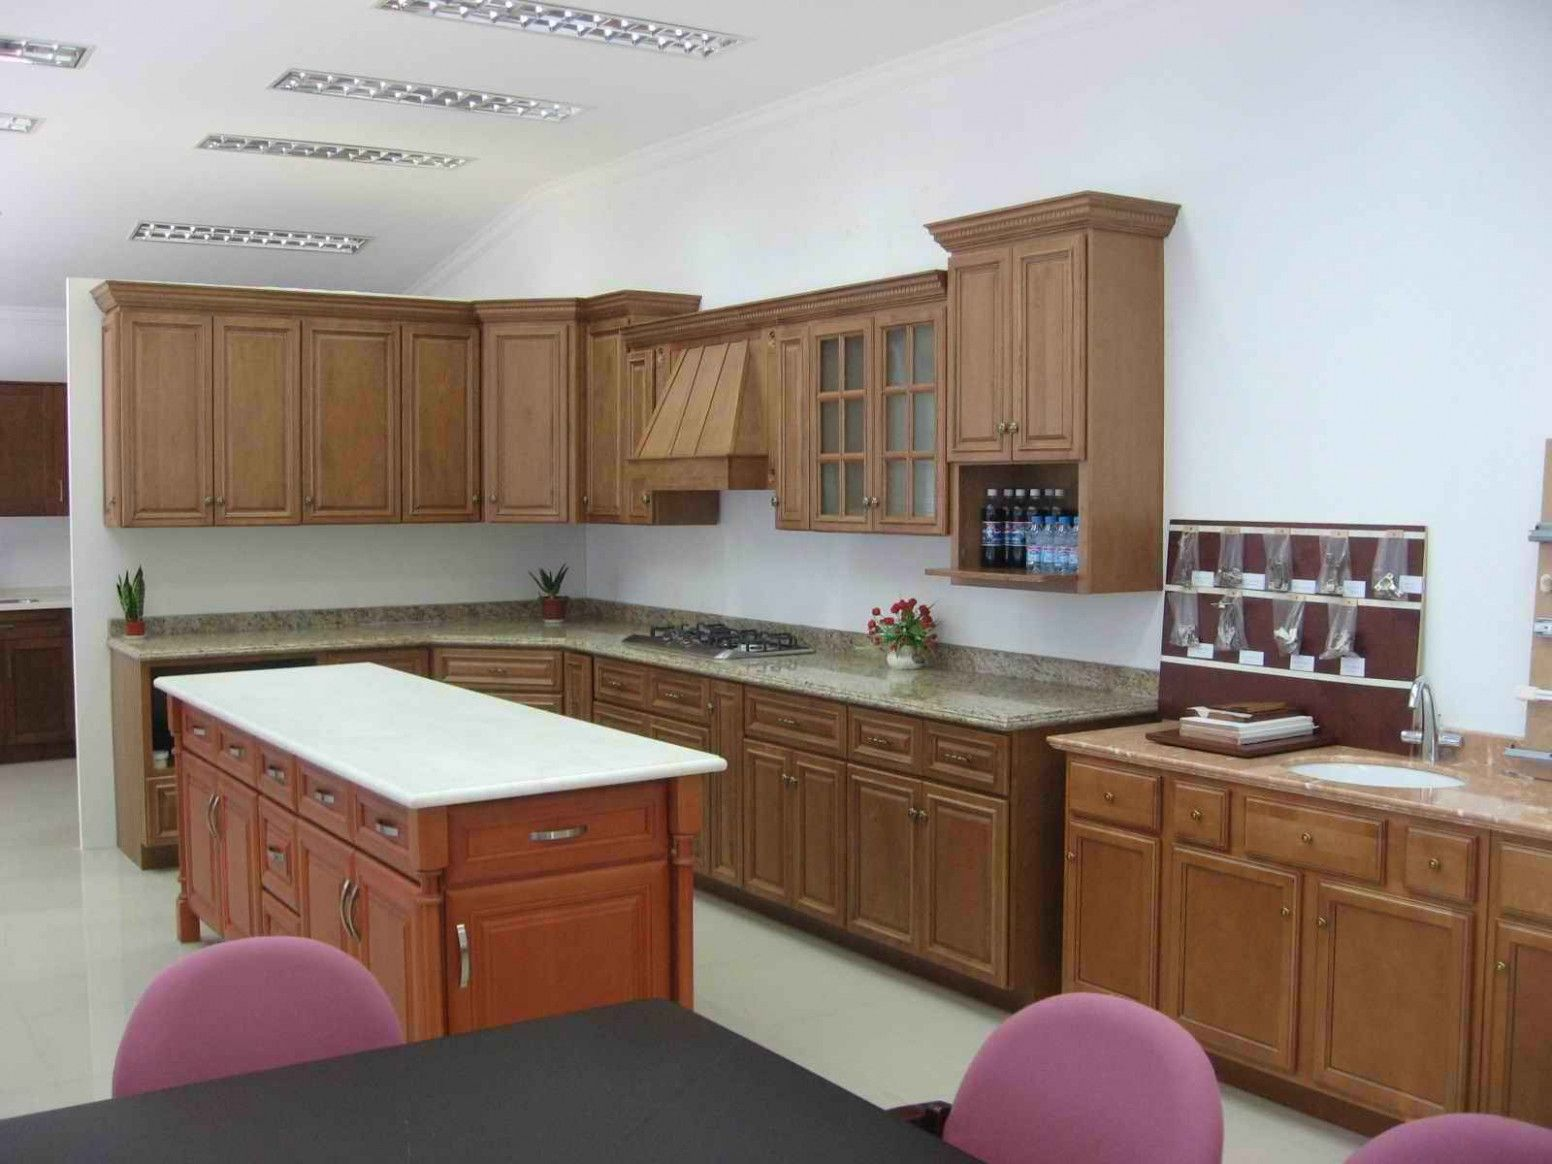 Best 19 Best Home Depot In Stock Cabinets Sale Home Depot Inc 400 x 300